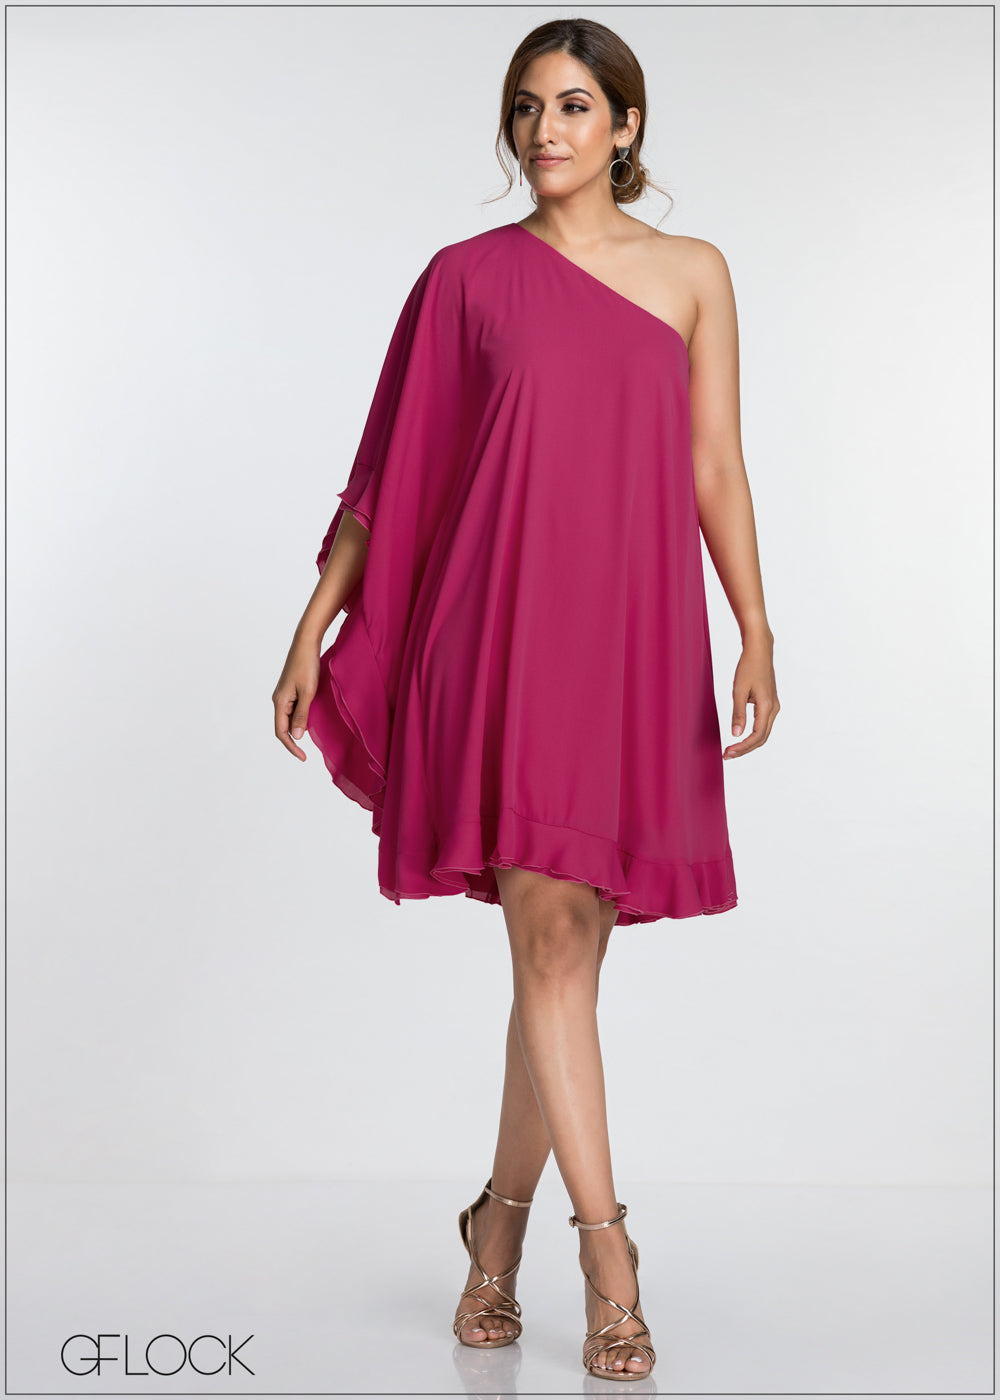 Frill Detailed Evening Dress - GFLOCK.LK